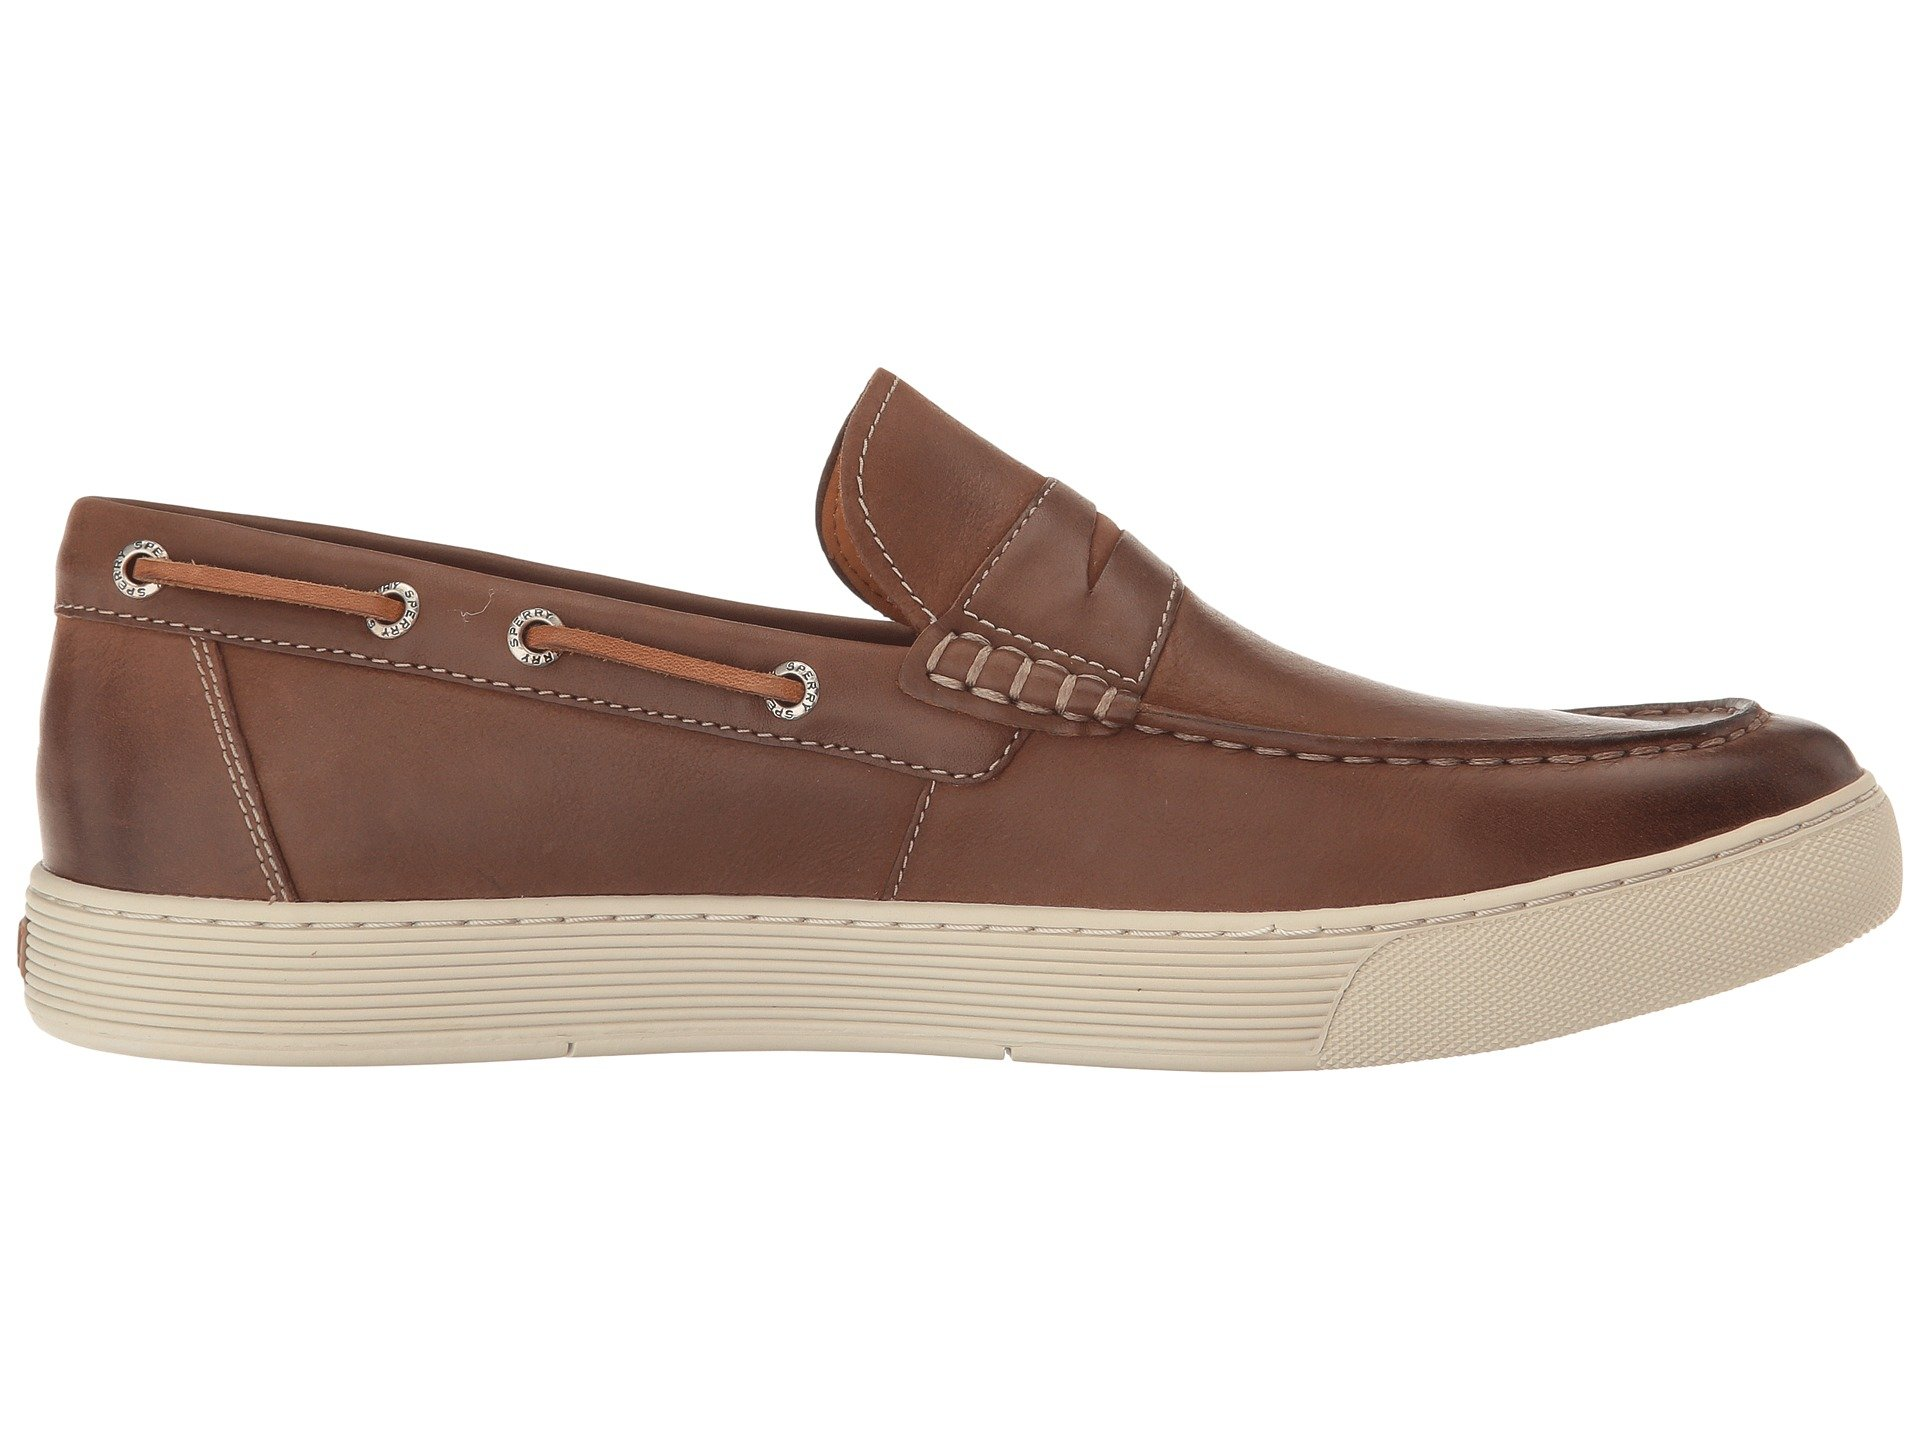 Gold Sport Casual Penny w/ ASV Sperry